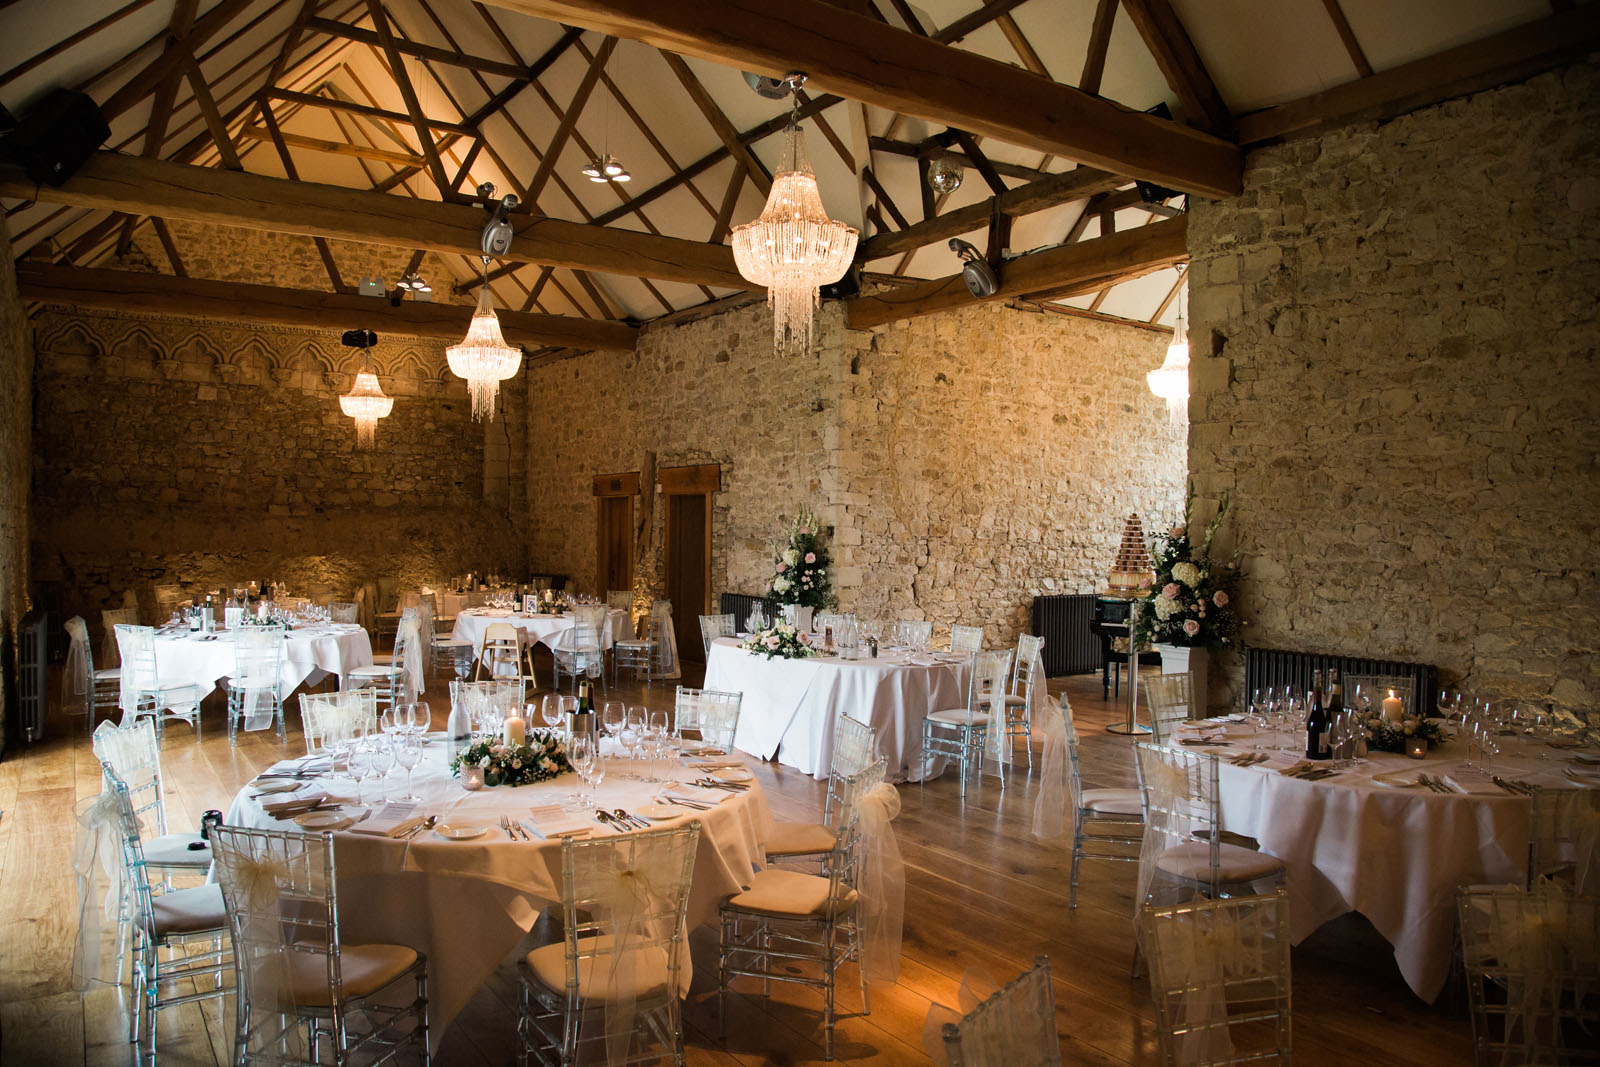 Notley Abbey Wedding Venue - photographed by Heni Fourie